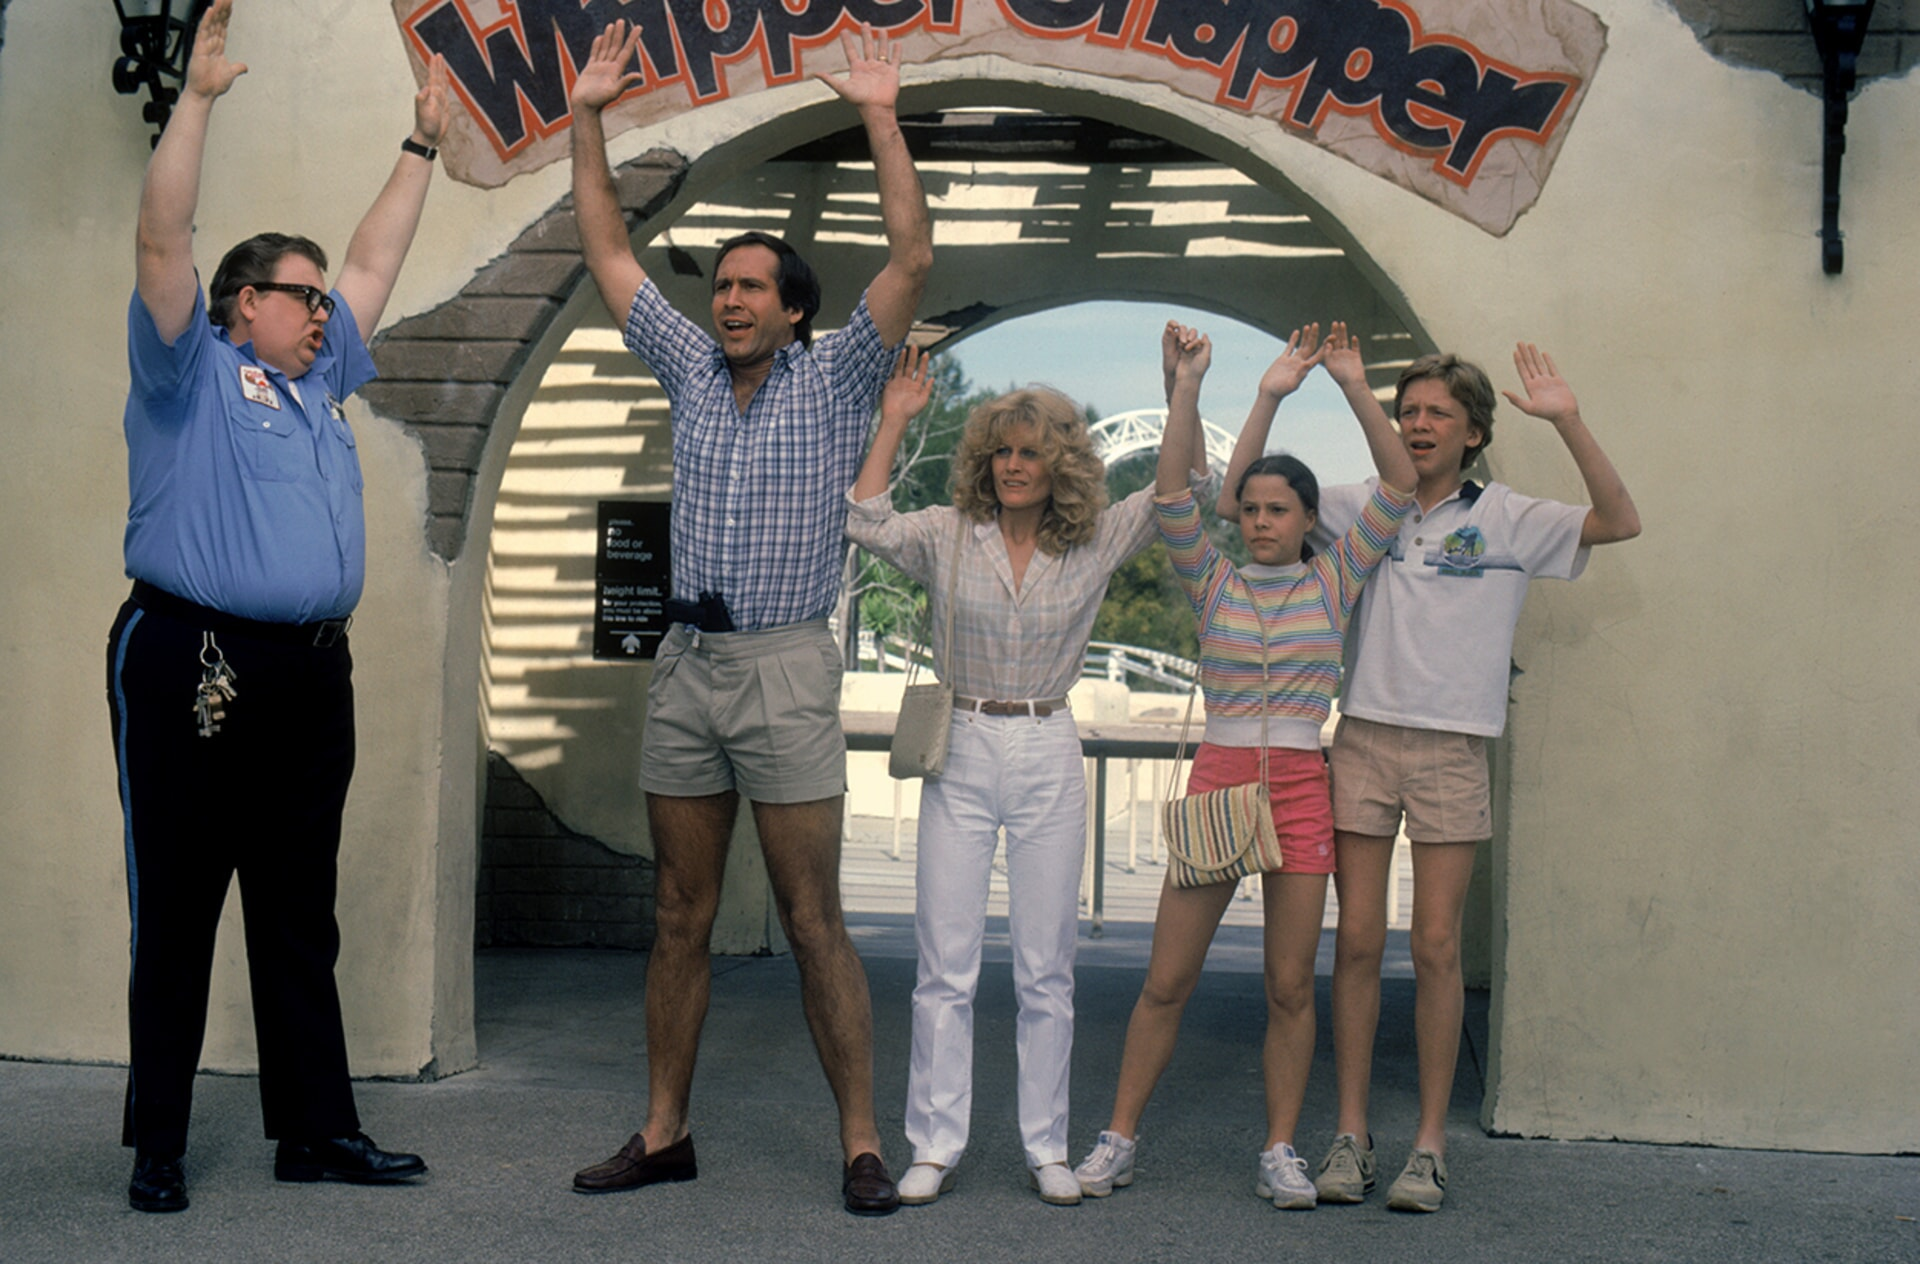 National Lampoon's Vacation - Image 6